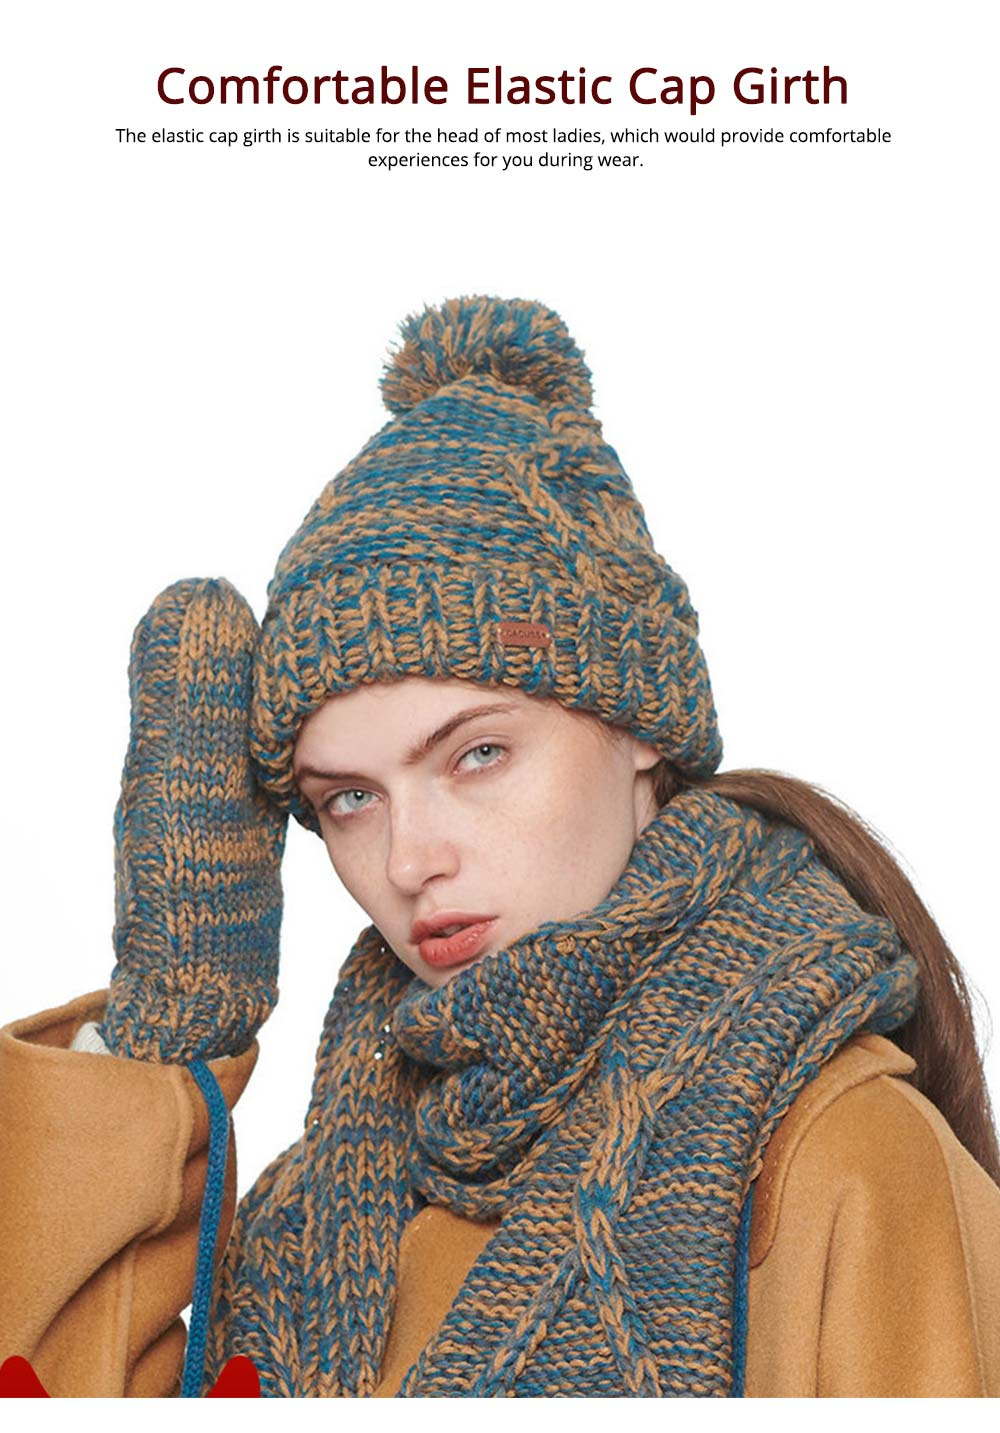 Winter Accessories for Ladies, Colorful Ladies Knitted Scarf Hat Gloves Suit with Wool Ball Decoration, Thicken Warm Autumn Winter 3 PCS Set  8